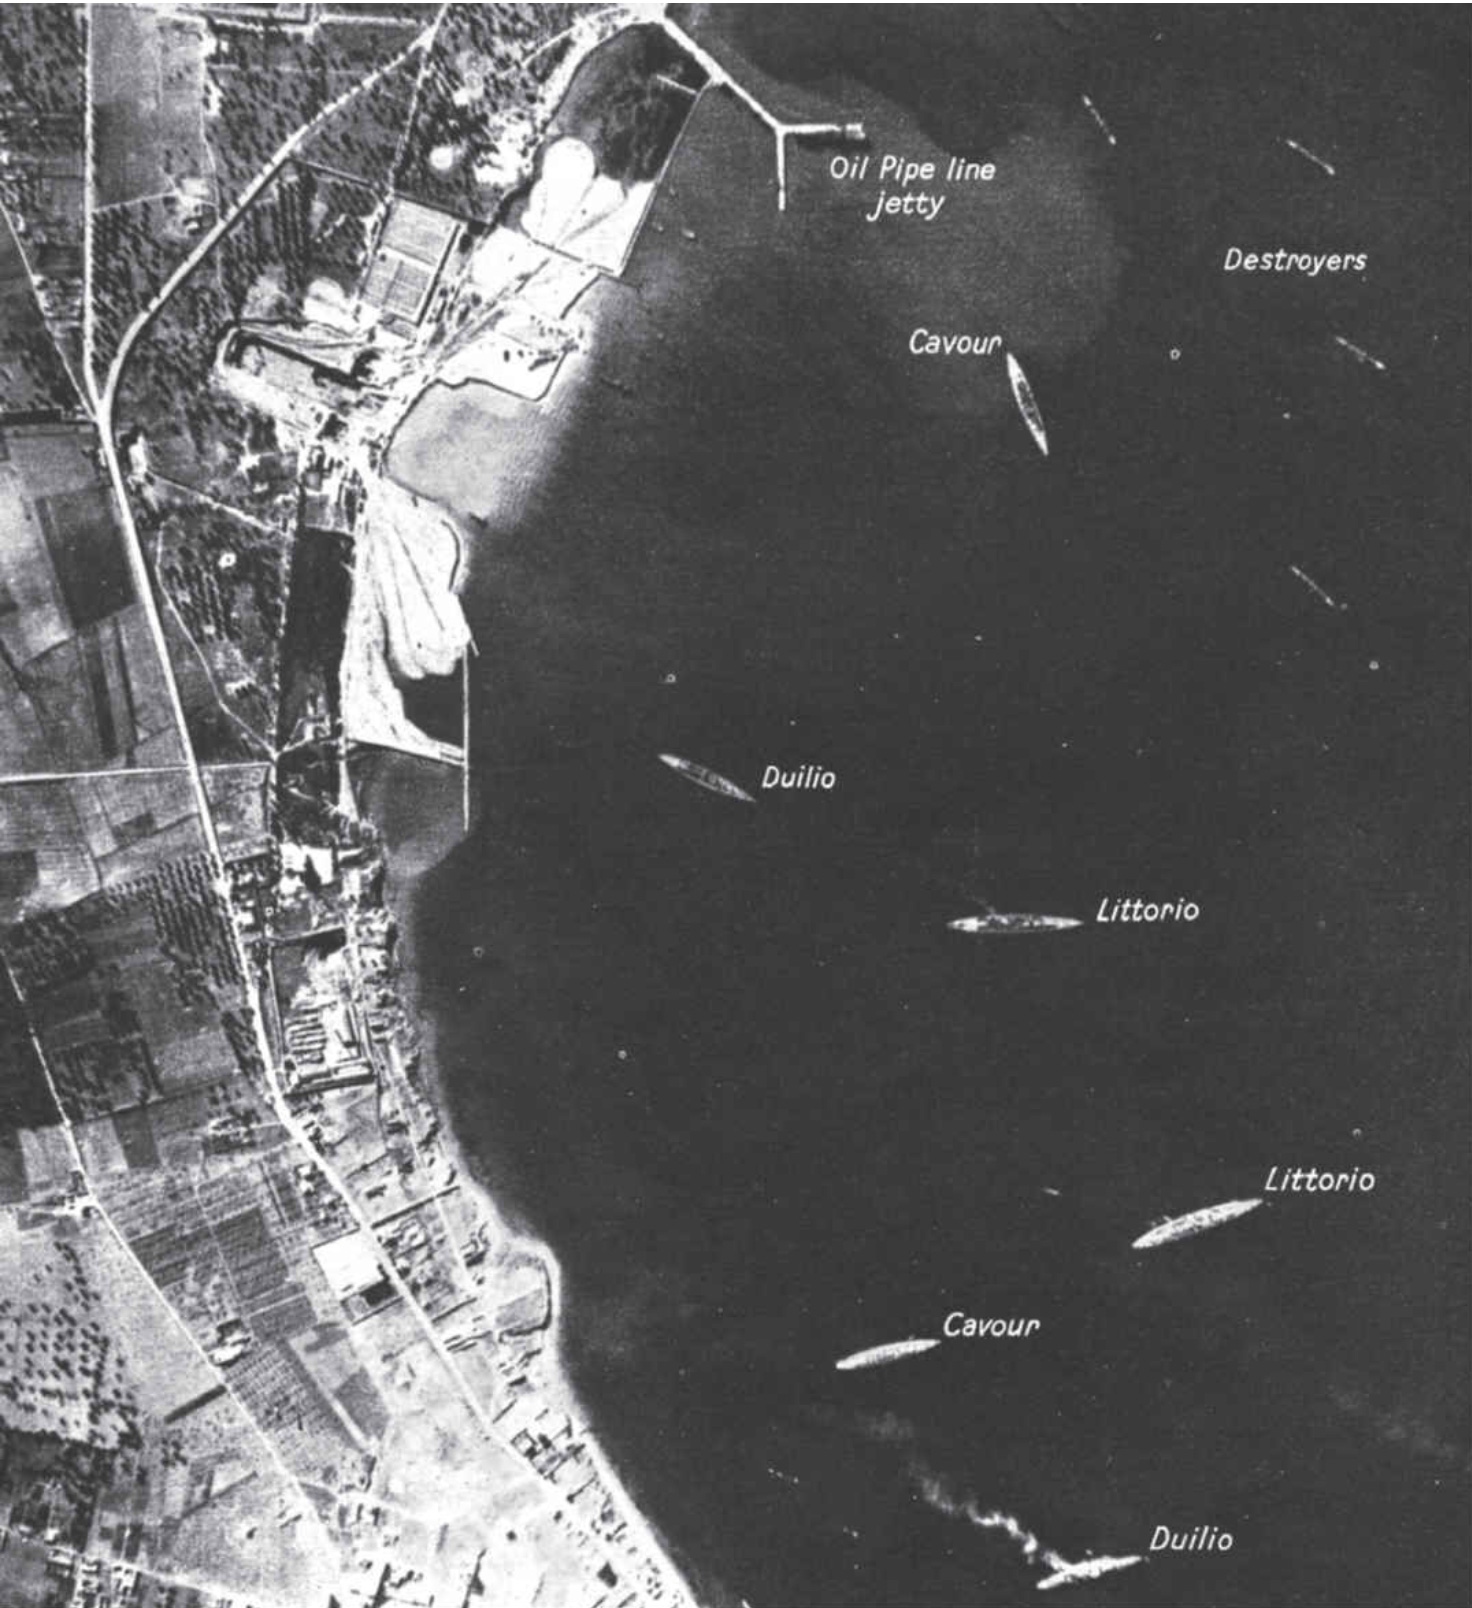 One of the reconnaissance photographs delivered to HMS ILLUSTRIOUS the day before Operation Judgement.